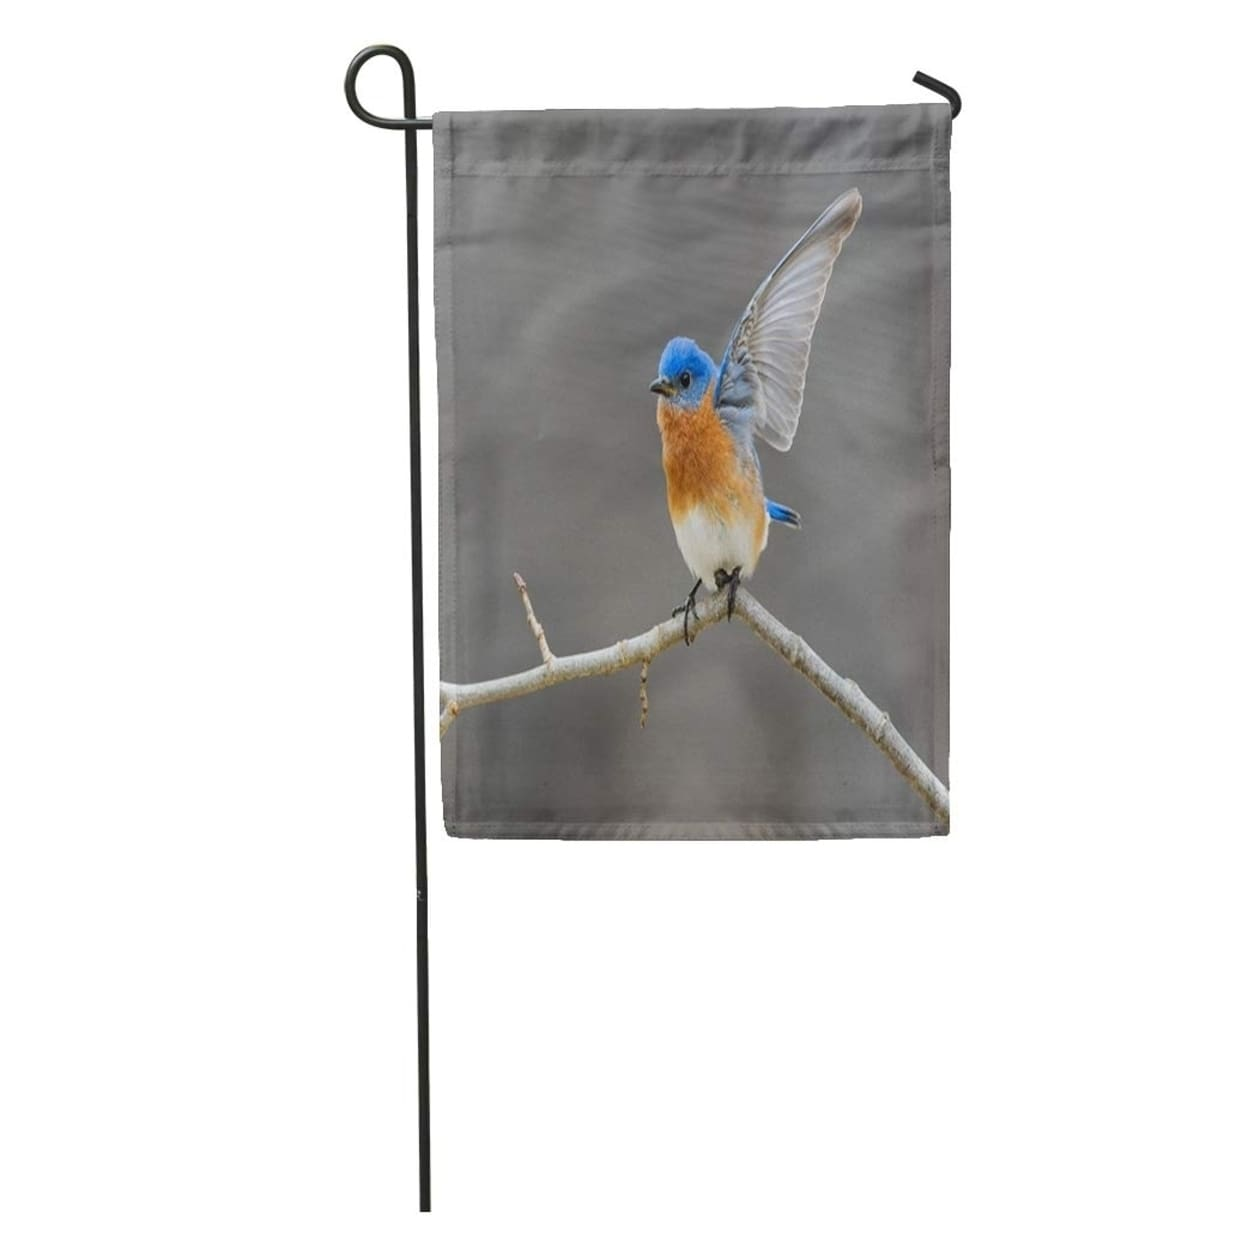 Blue Male Eastern Bluebird Open Wings Perched On Twig Avian Bird Garden Flag Decorative Flag House Banner 28x40 Inch N A Overstock 31334649